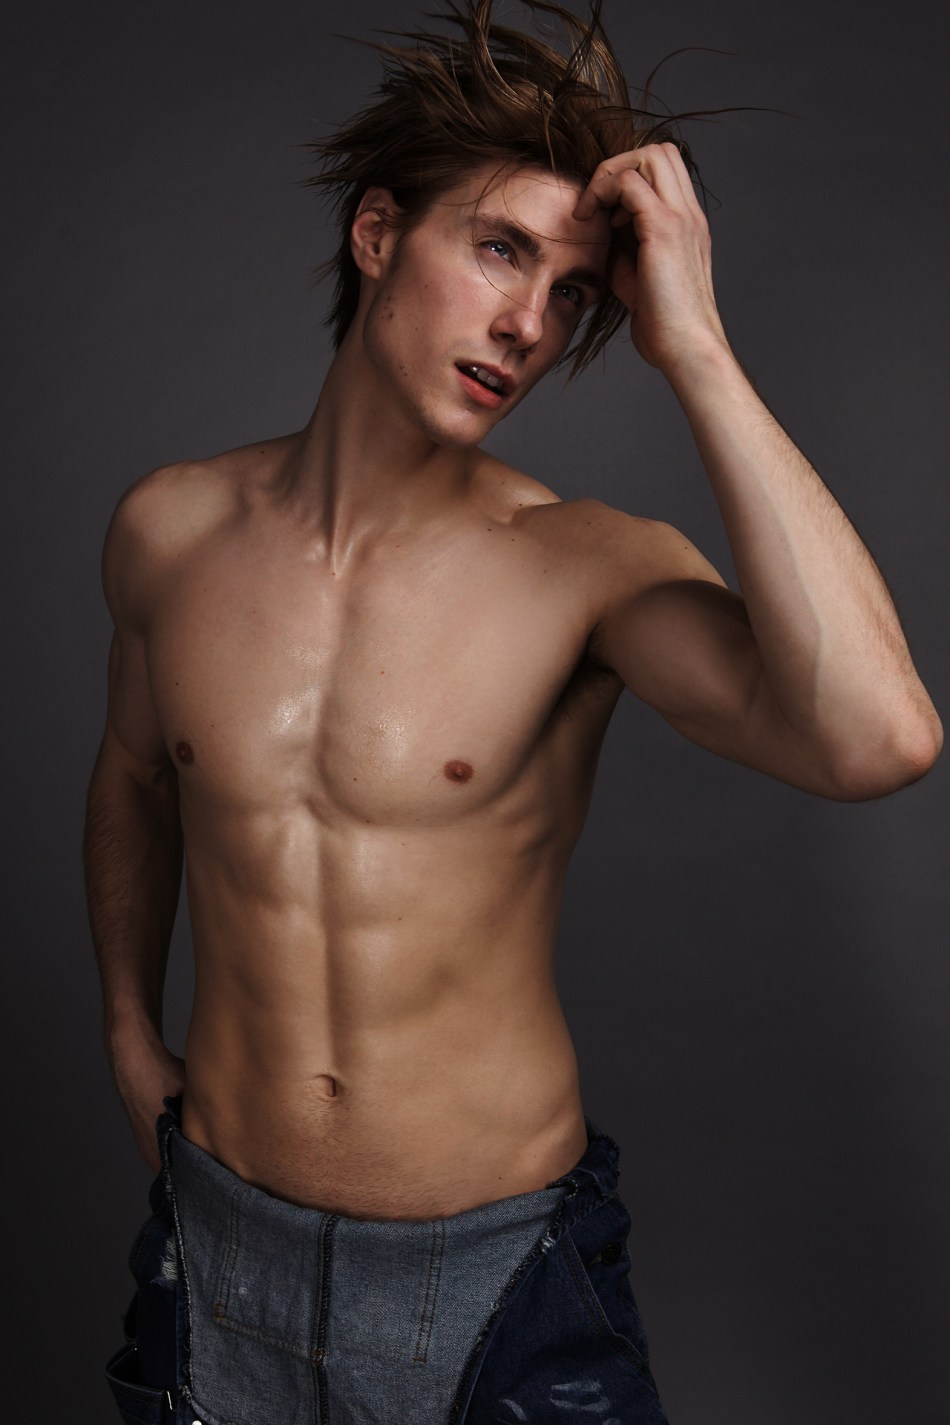 Dorian Reeves by Tina Chang7